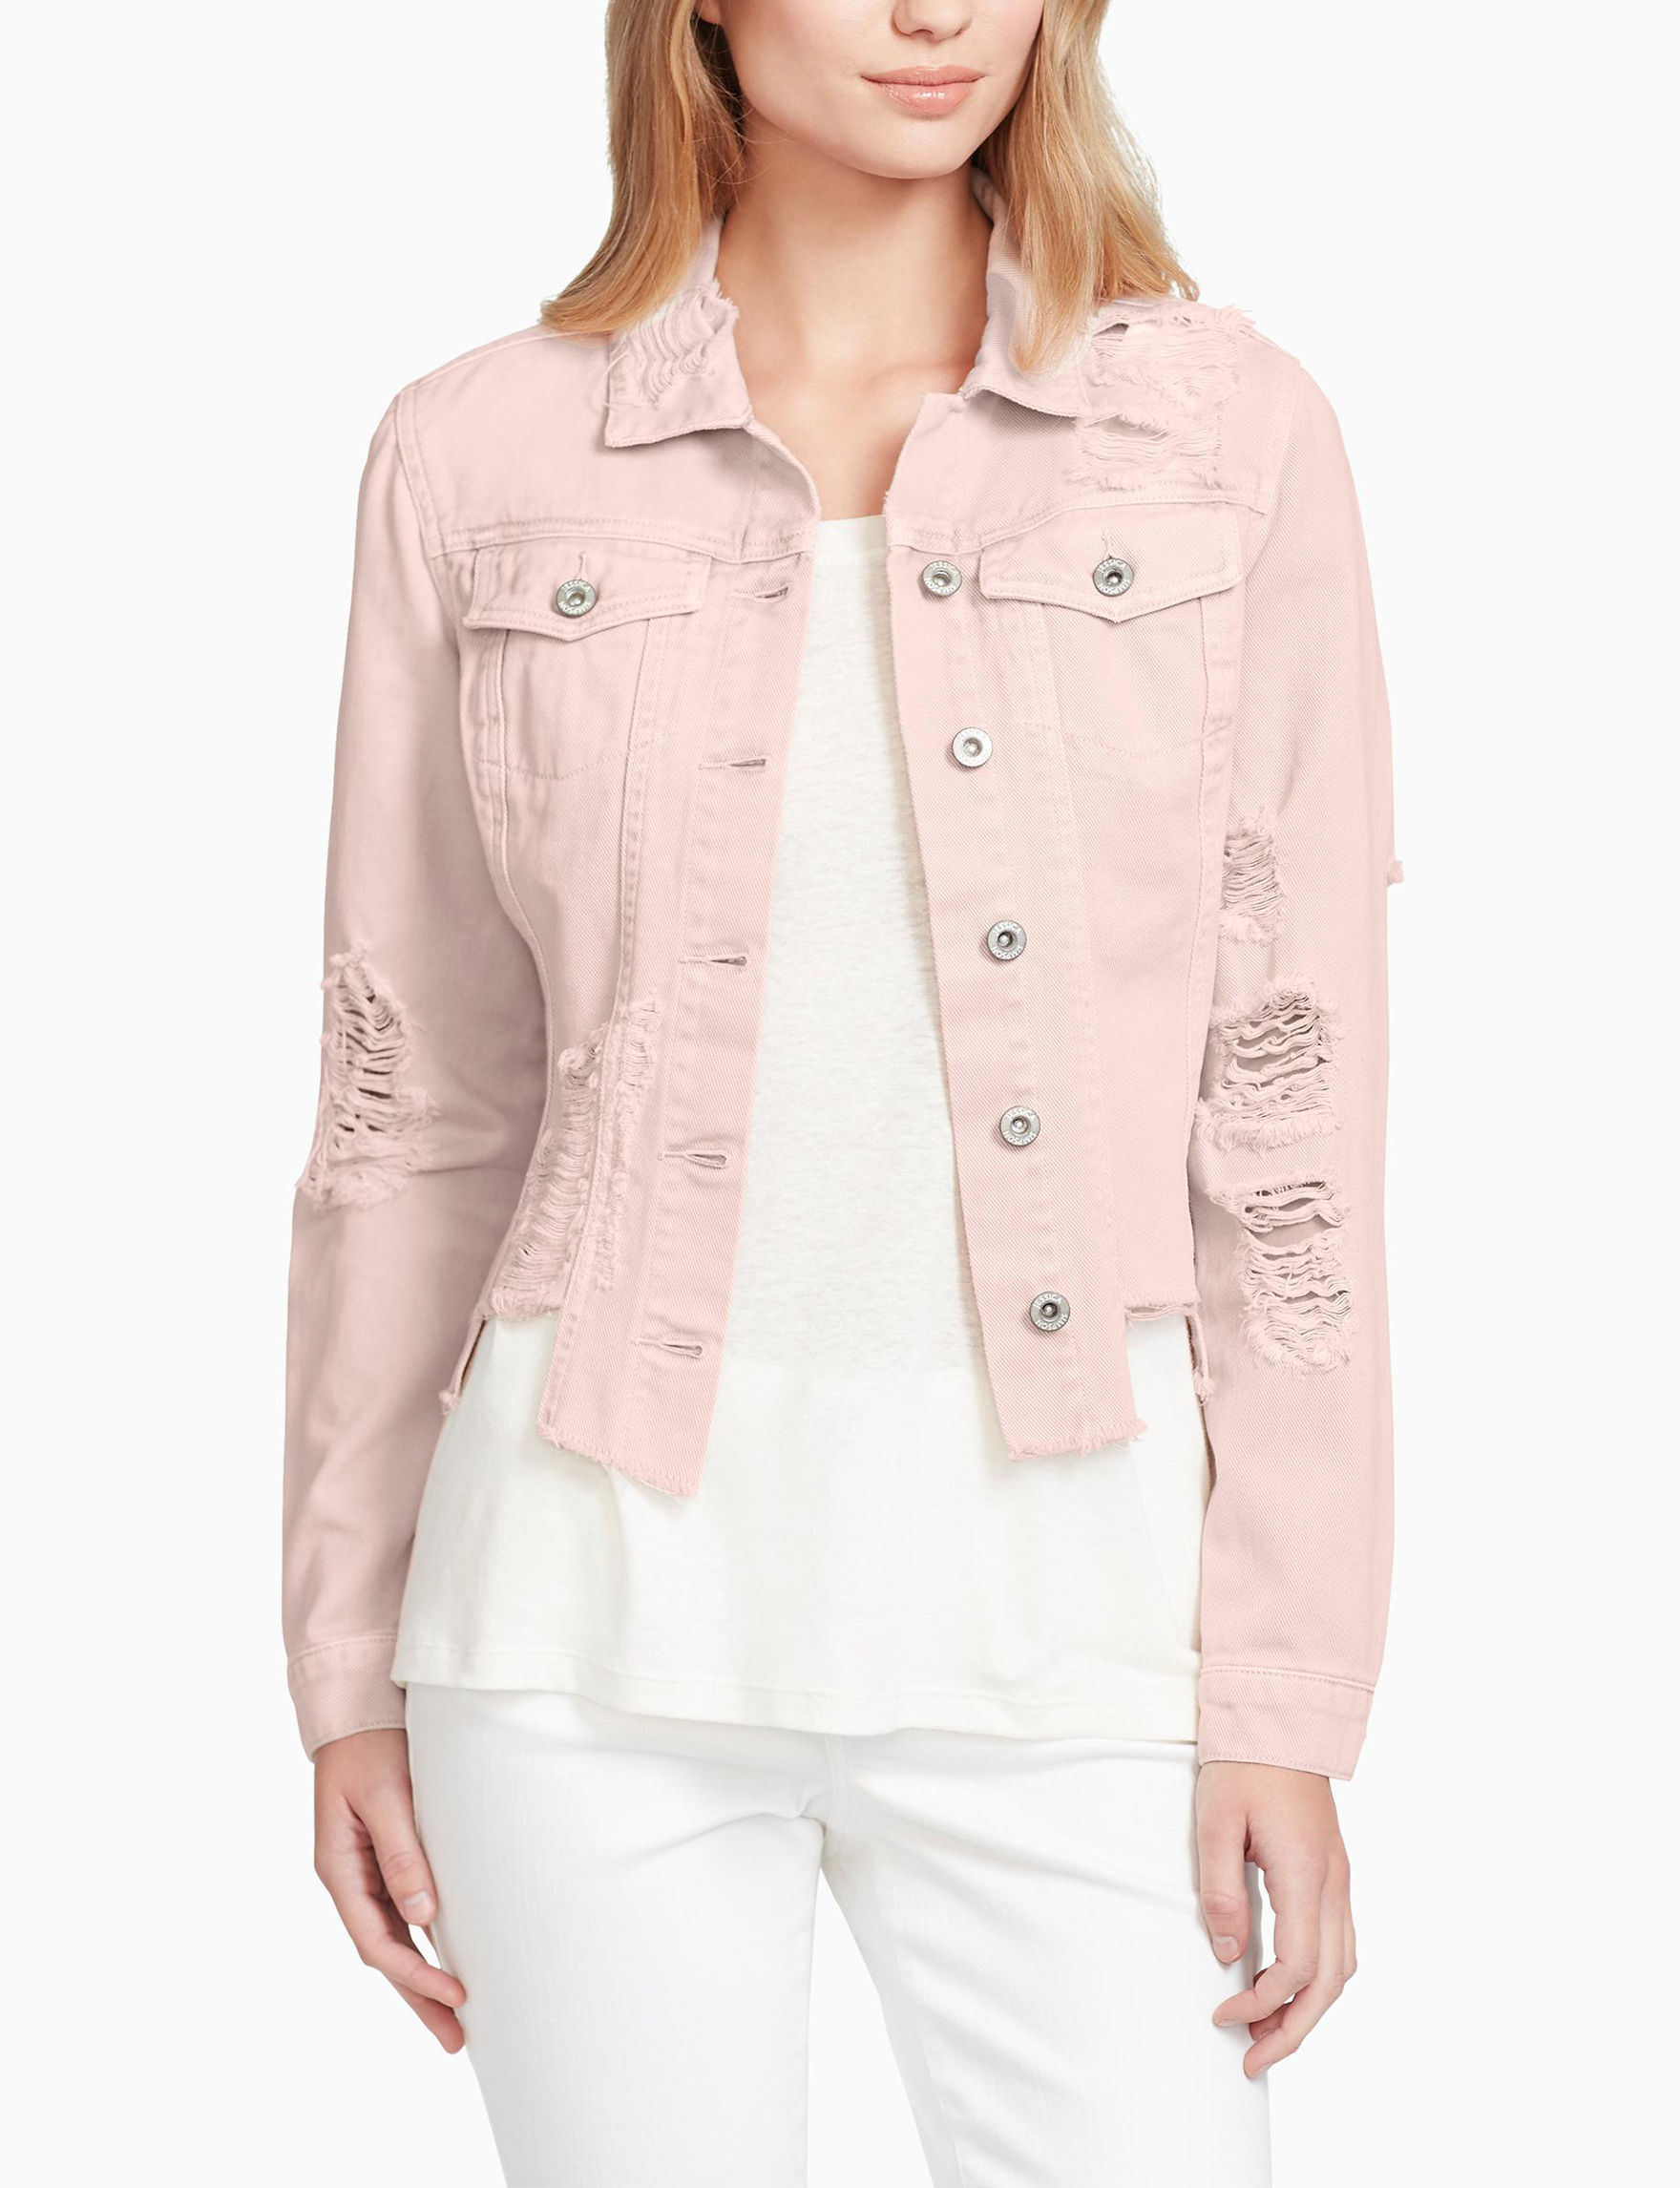 Jessica Simpson Light Pink Denim Jackets